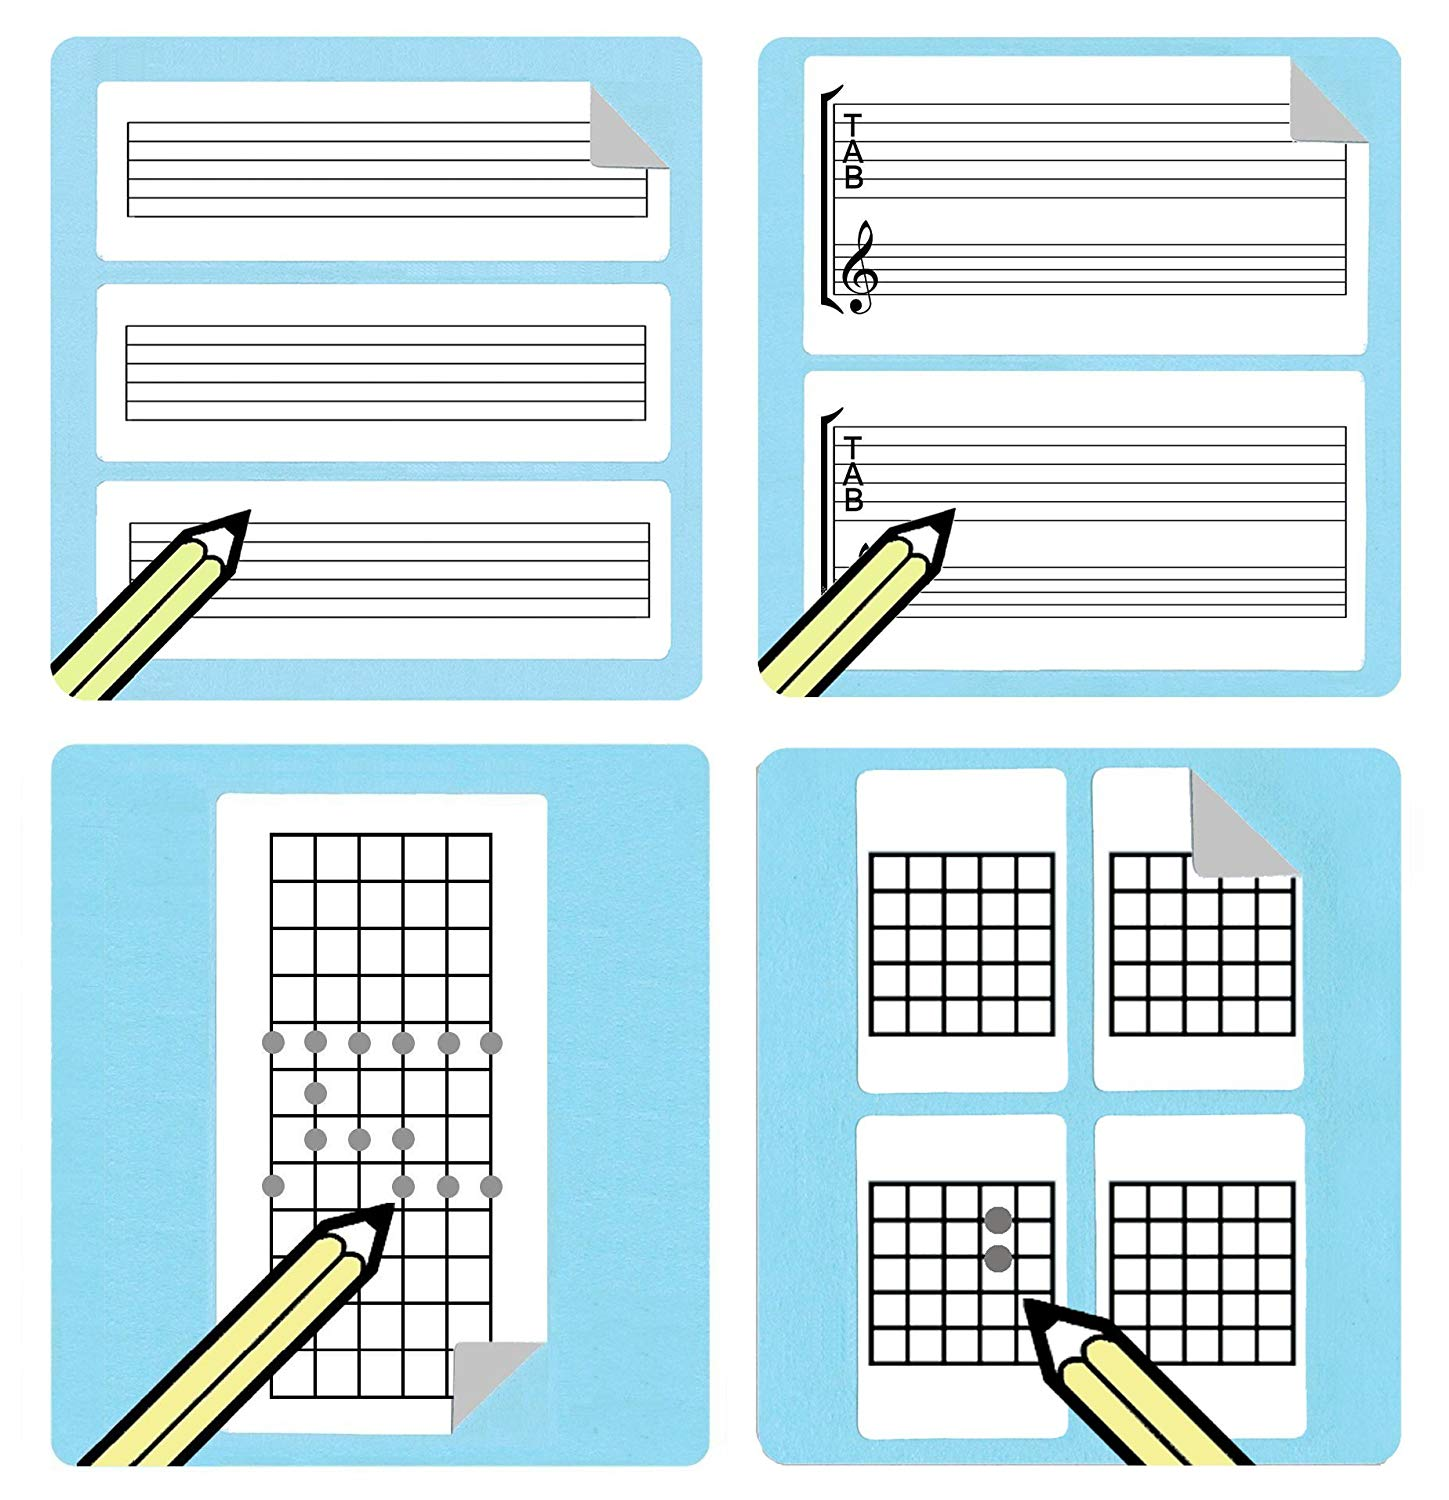 hight resolution of guitar teacher and student chord tablature fretboard diagram stickers gift pack